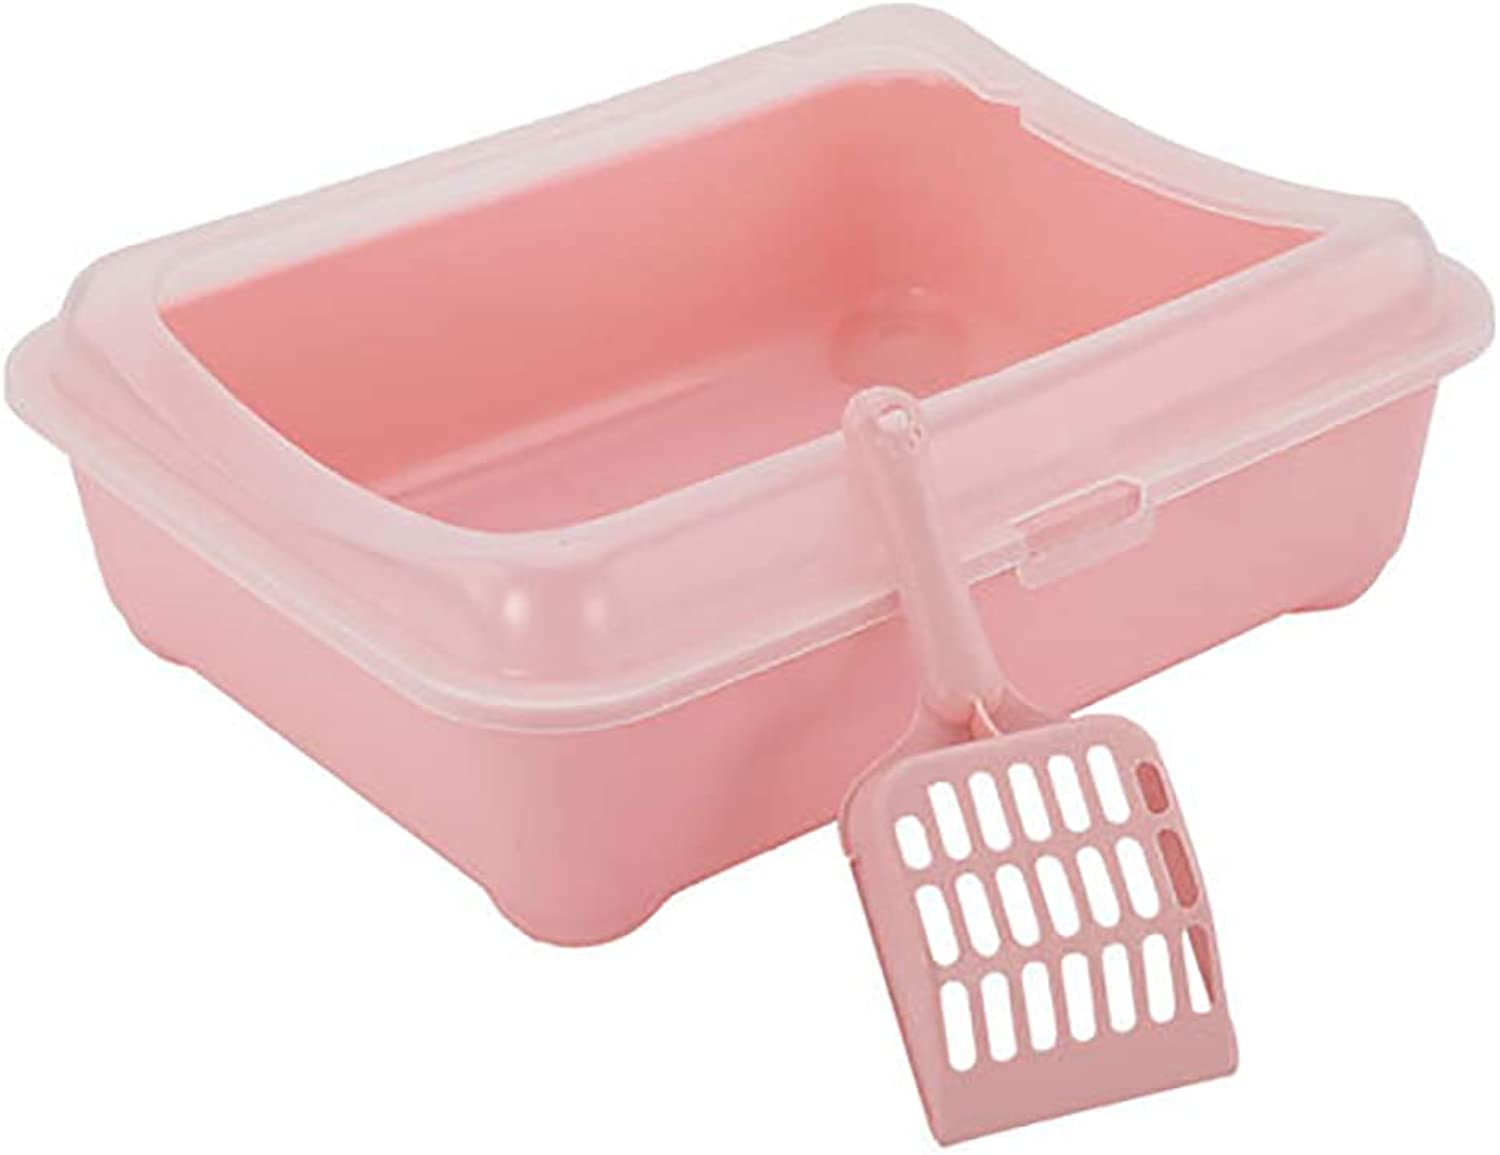 Candy color Litter Box, cat Toilet Litter Box with Litter Scoop,SemiClosed pet cat Toilet,pet Toilet,Avoid Urine Splashing Outward